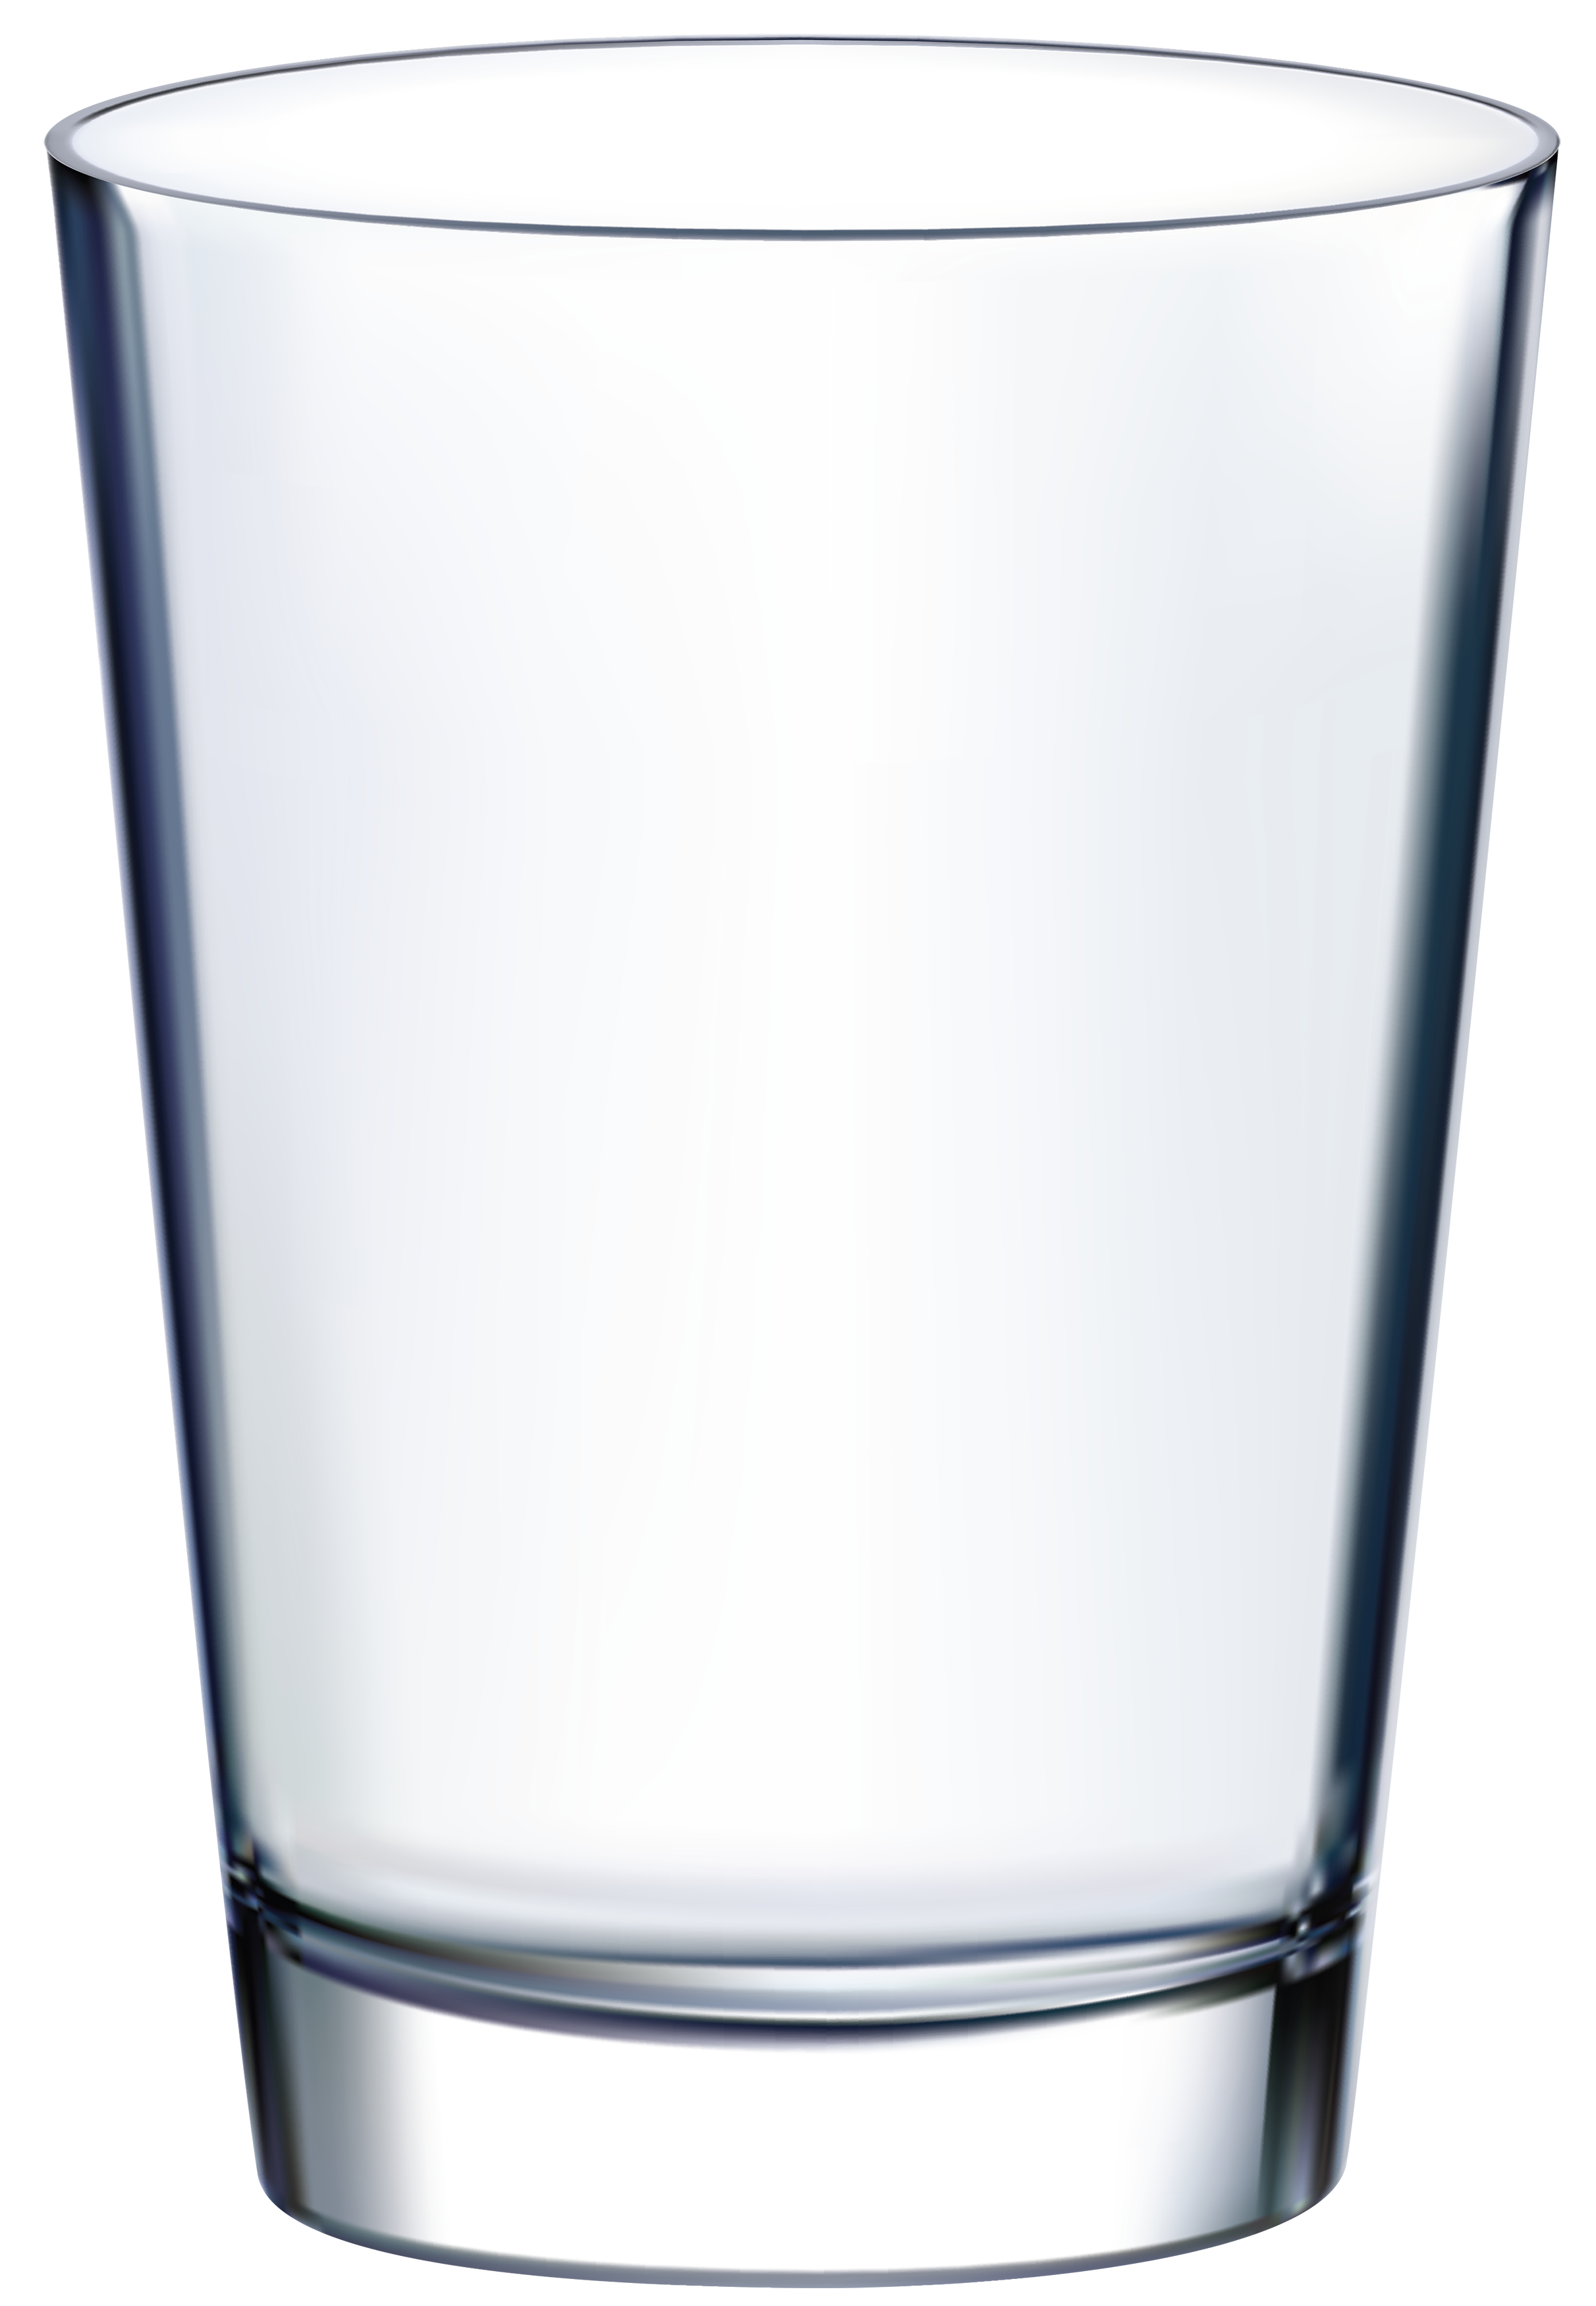 Glass PNG Clipart Image.